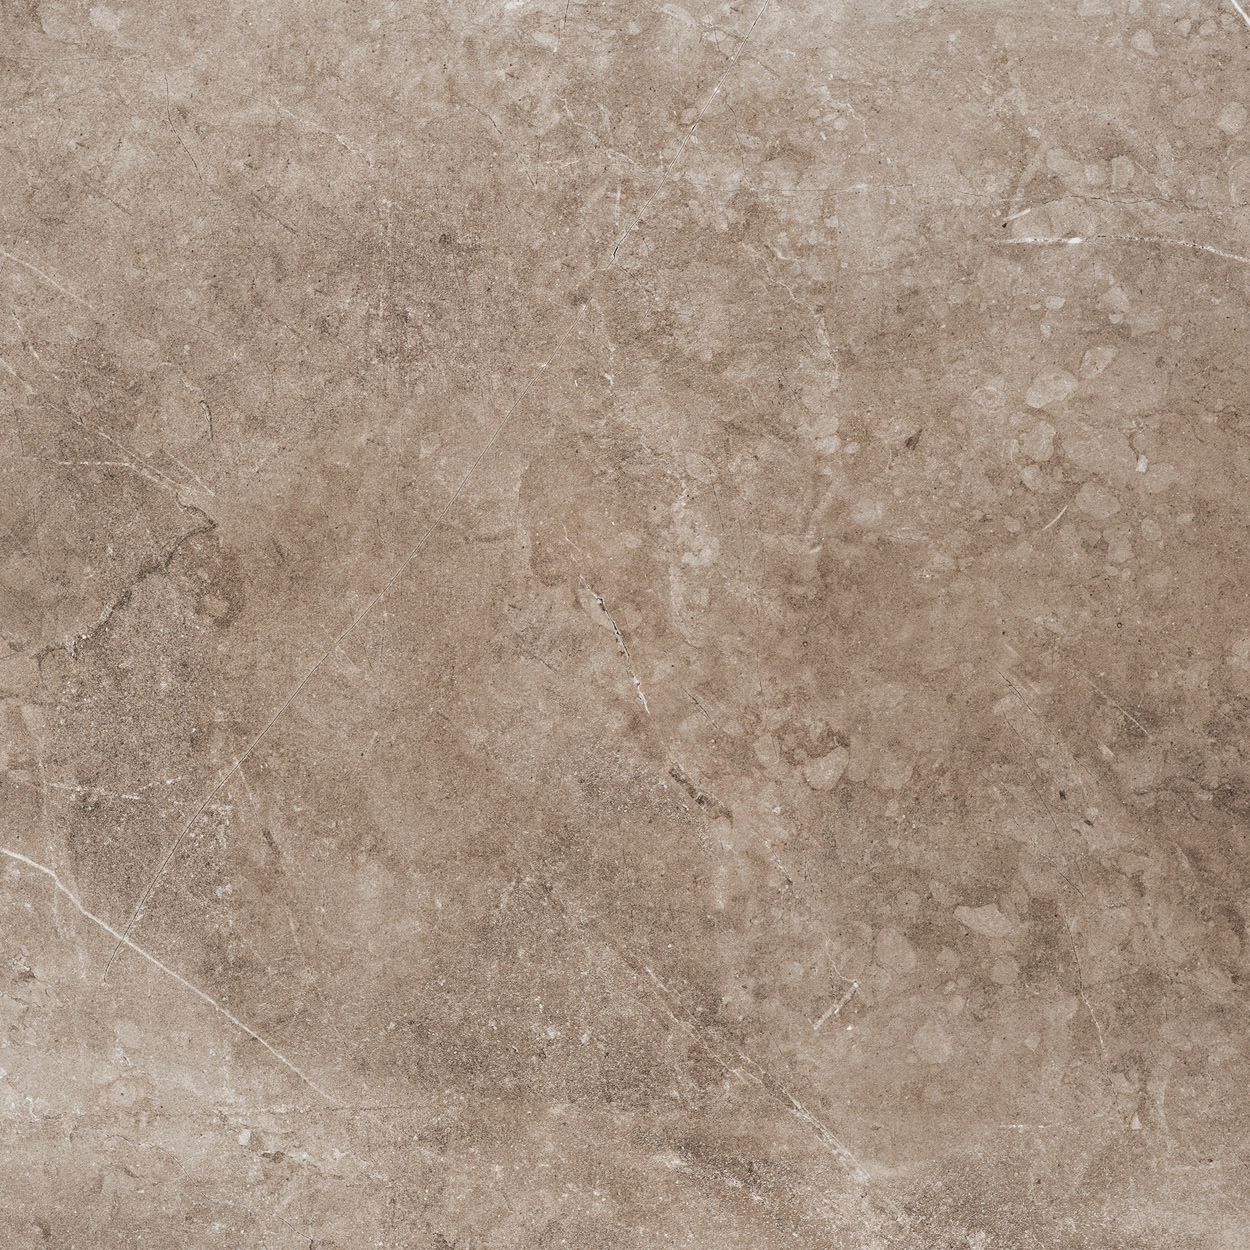 12 x 24 Evo Stone Dune Honed finished Rectified Porcelain Tile